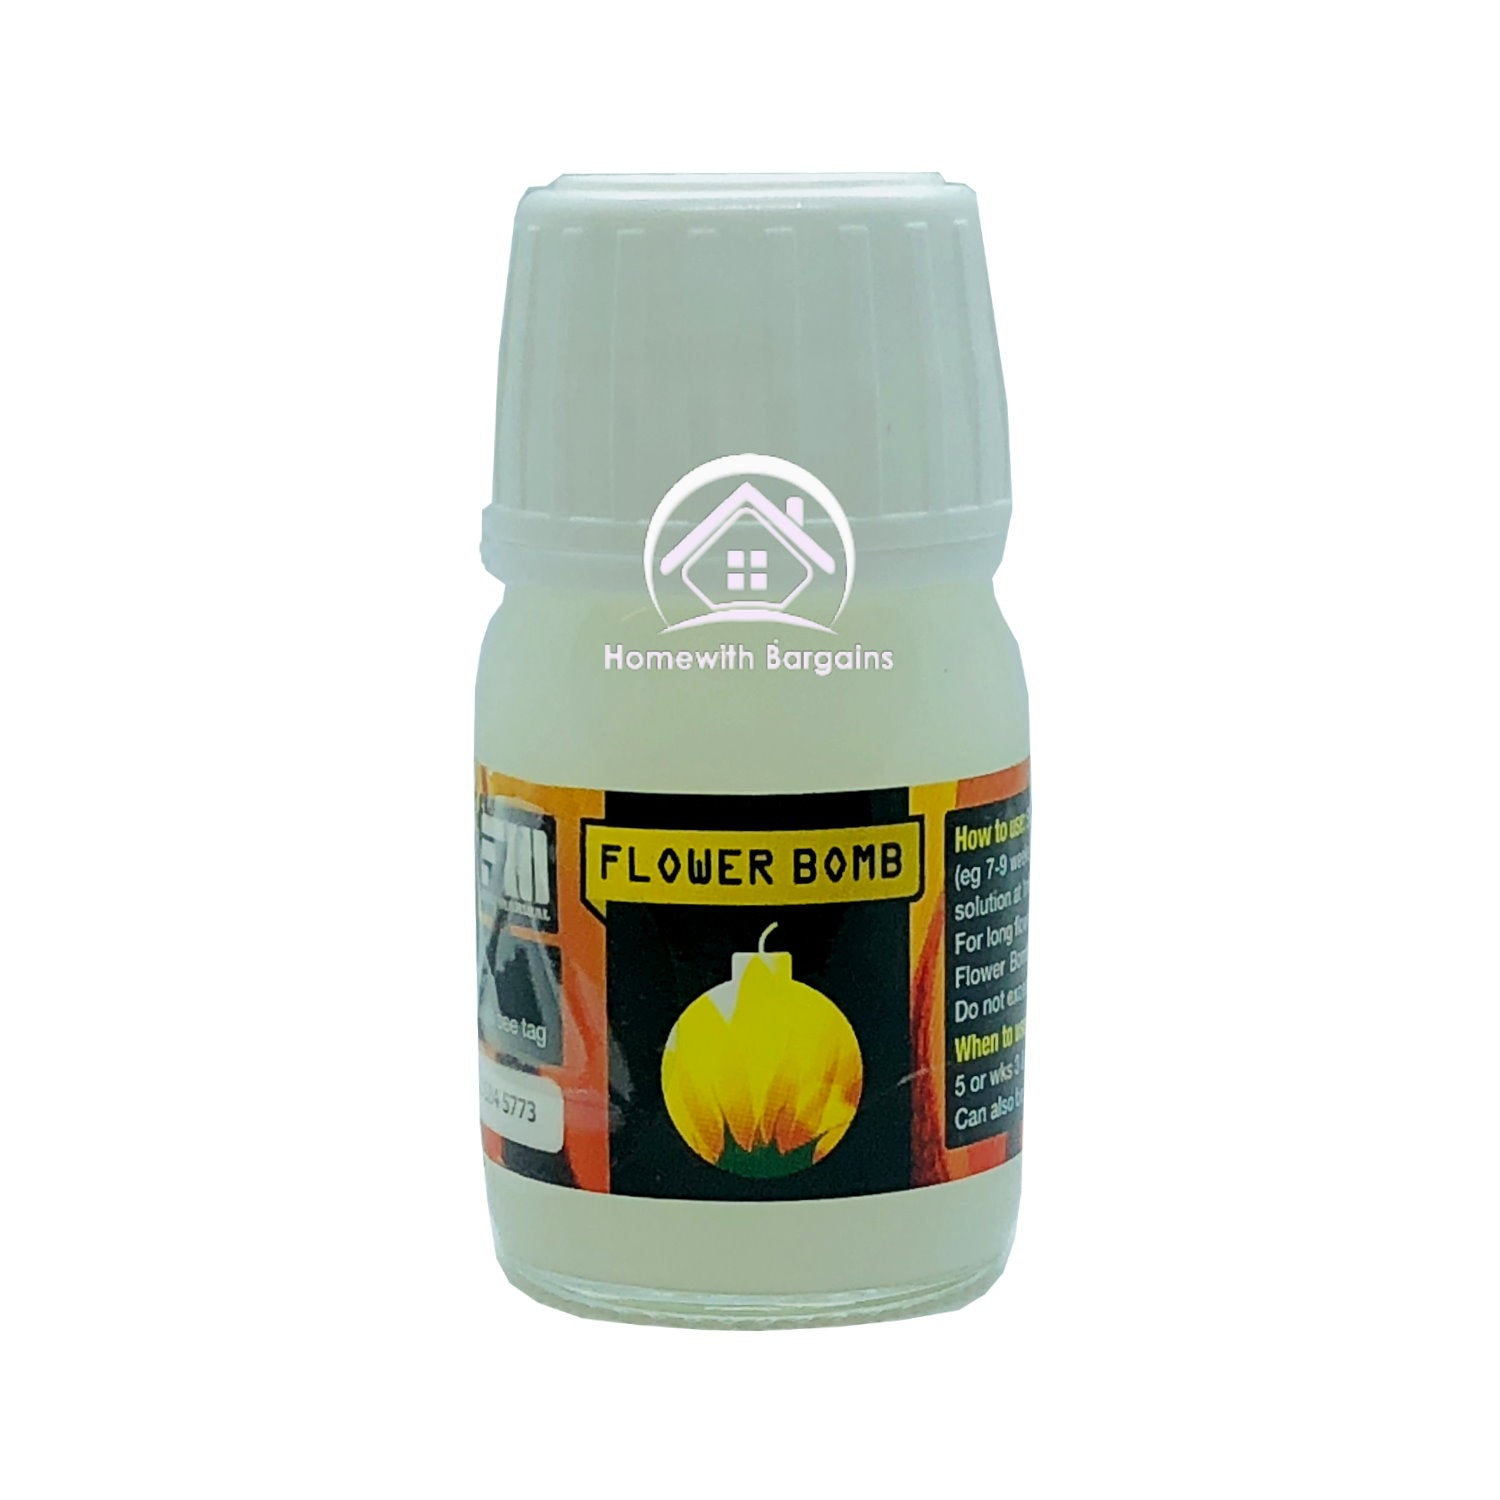 FLOWER BOMB Nutrient PGR Additive Maximiser Weight Early Bud Density FlowerBomb Hydroponics